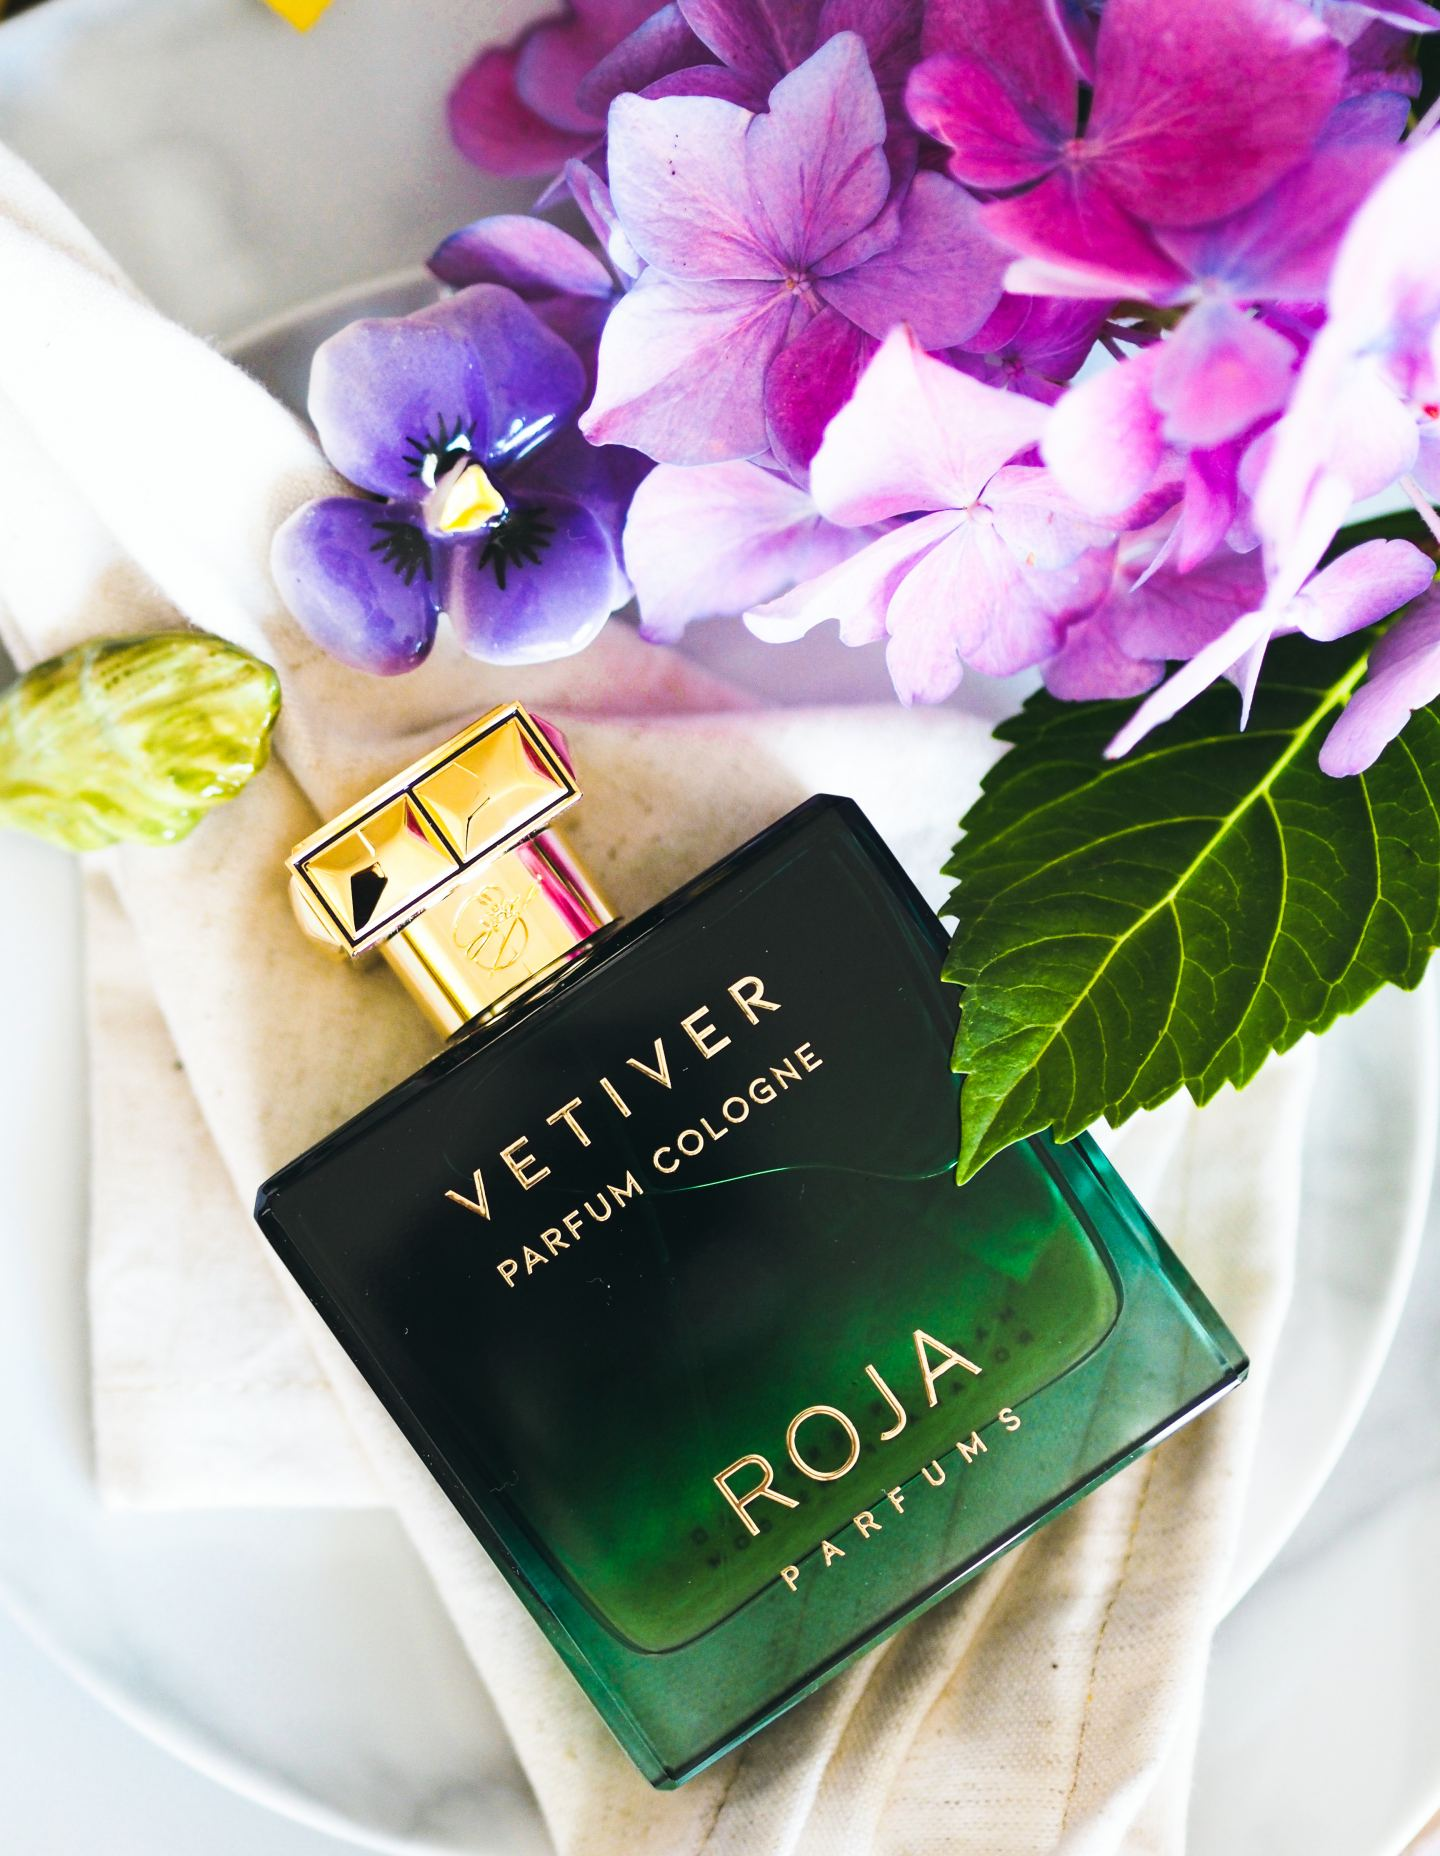 vetiver roja parfums perfume perfume review fragrance copy roja dove cologne